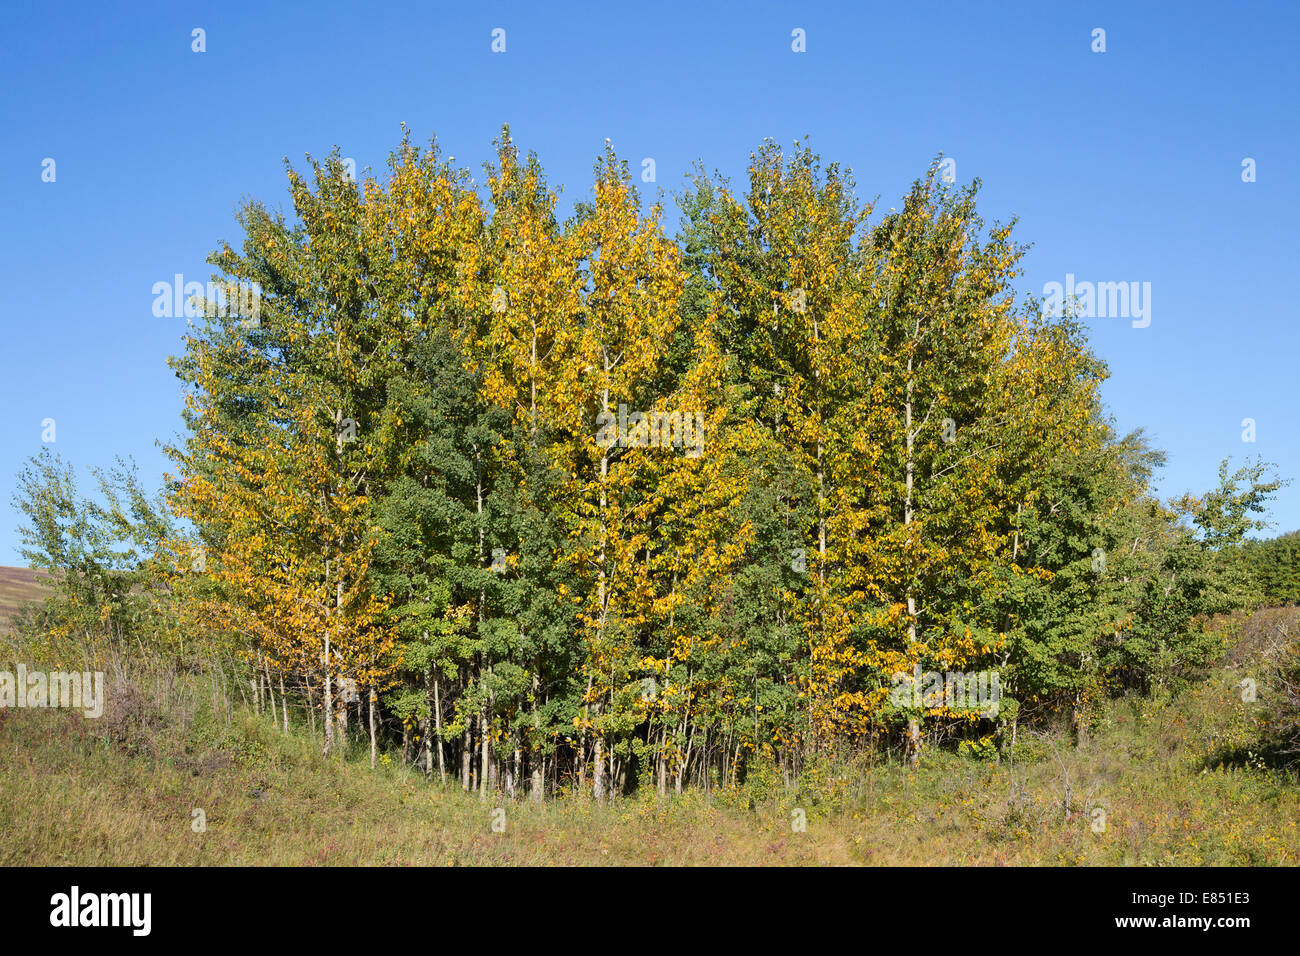 Poplar grove in a hollow in Rough Fescue grassland with change in colors from summer green to autumn yellow - Stock Image